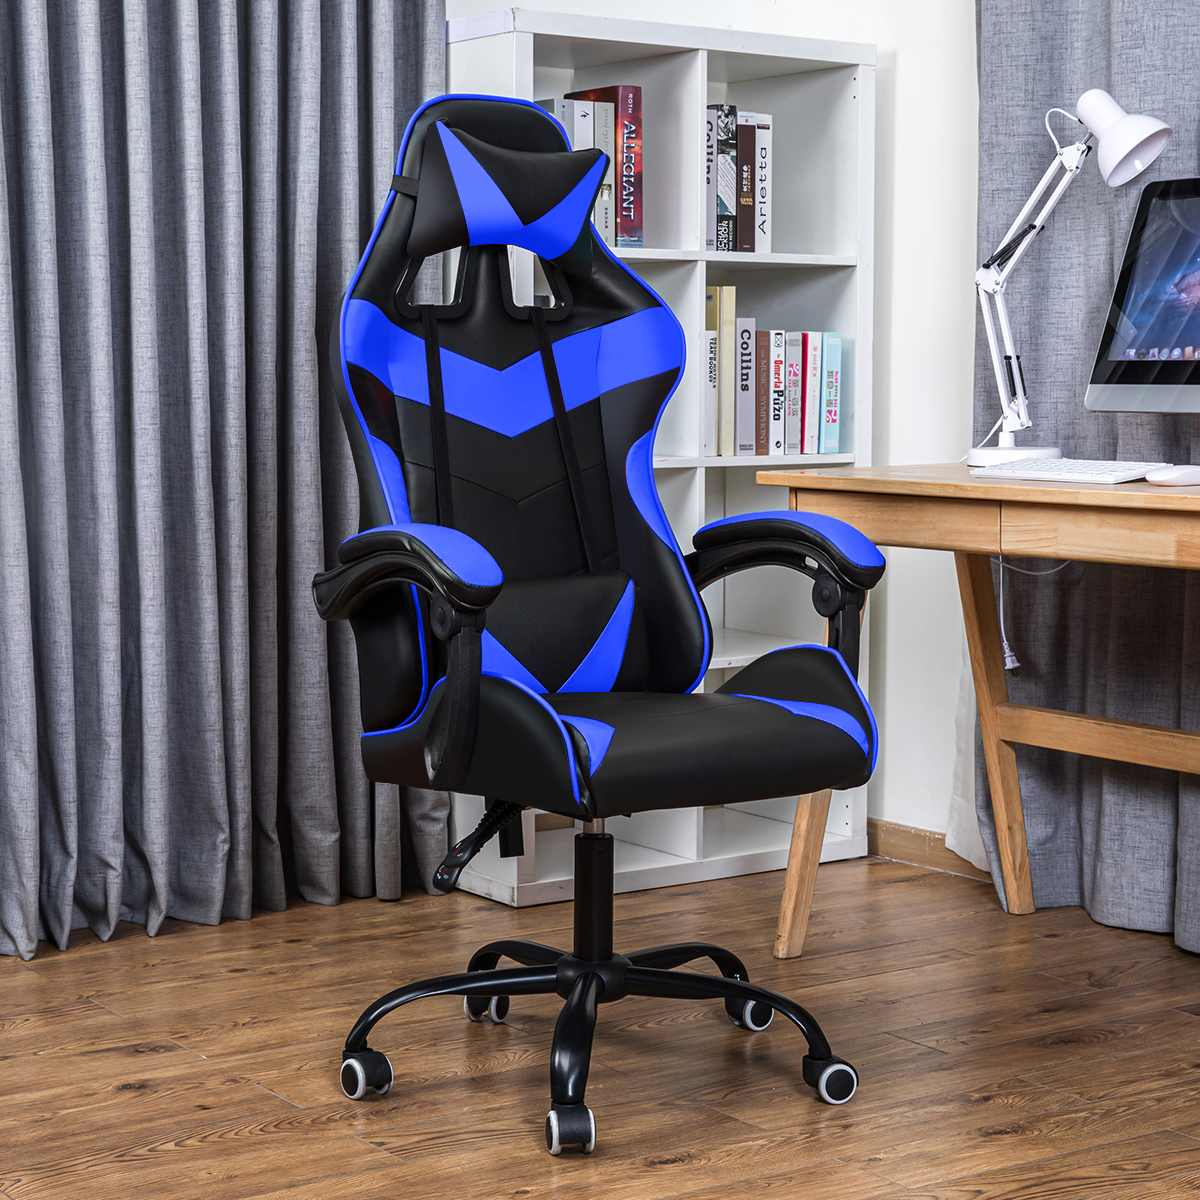 H2a4192b3c1f44b19b2d1729fb32e0d76h - Office Gaming Chair with Footrest Ergonomic Office Chairs Adjustable Swivel Leather High Back Computer Desk Chair with Headrest